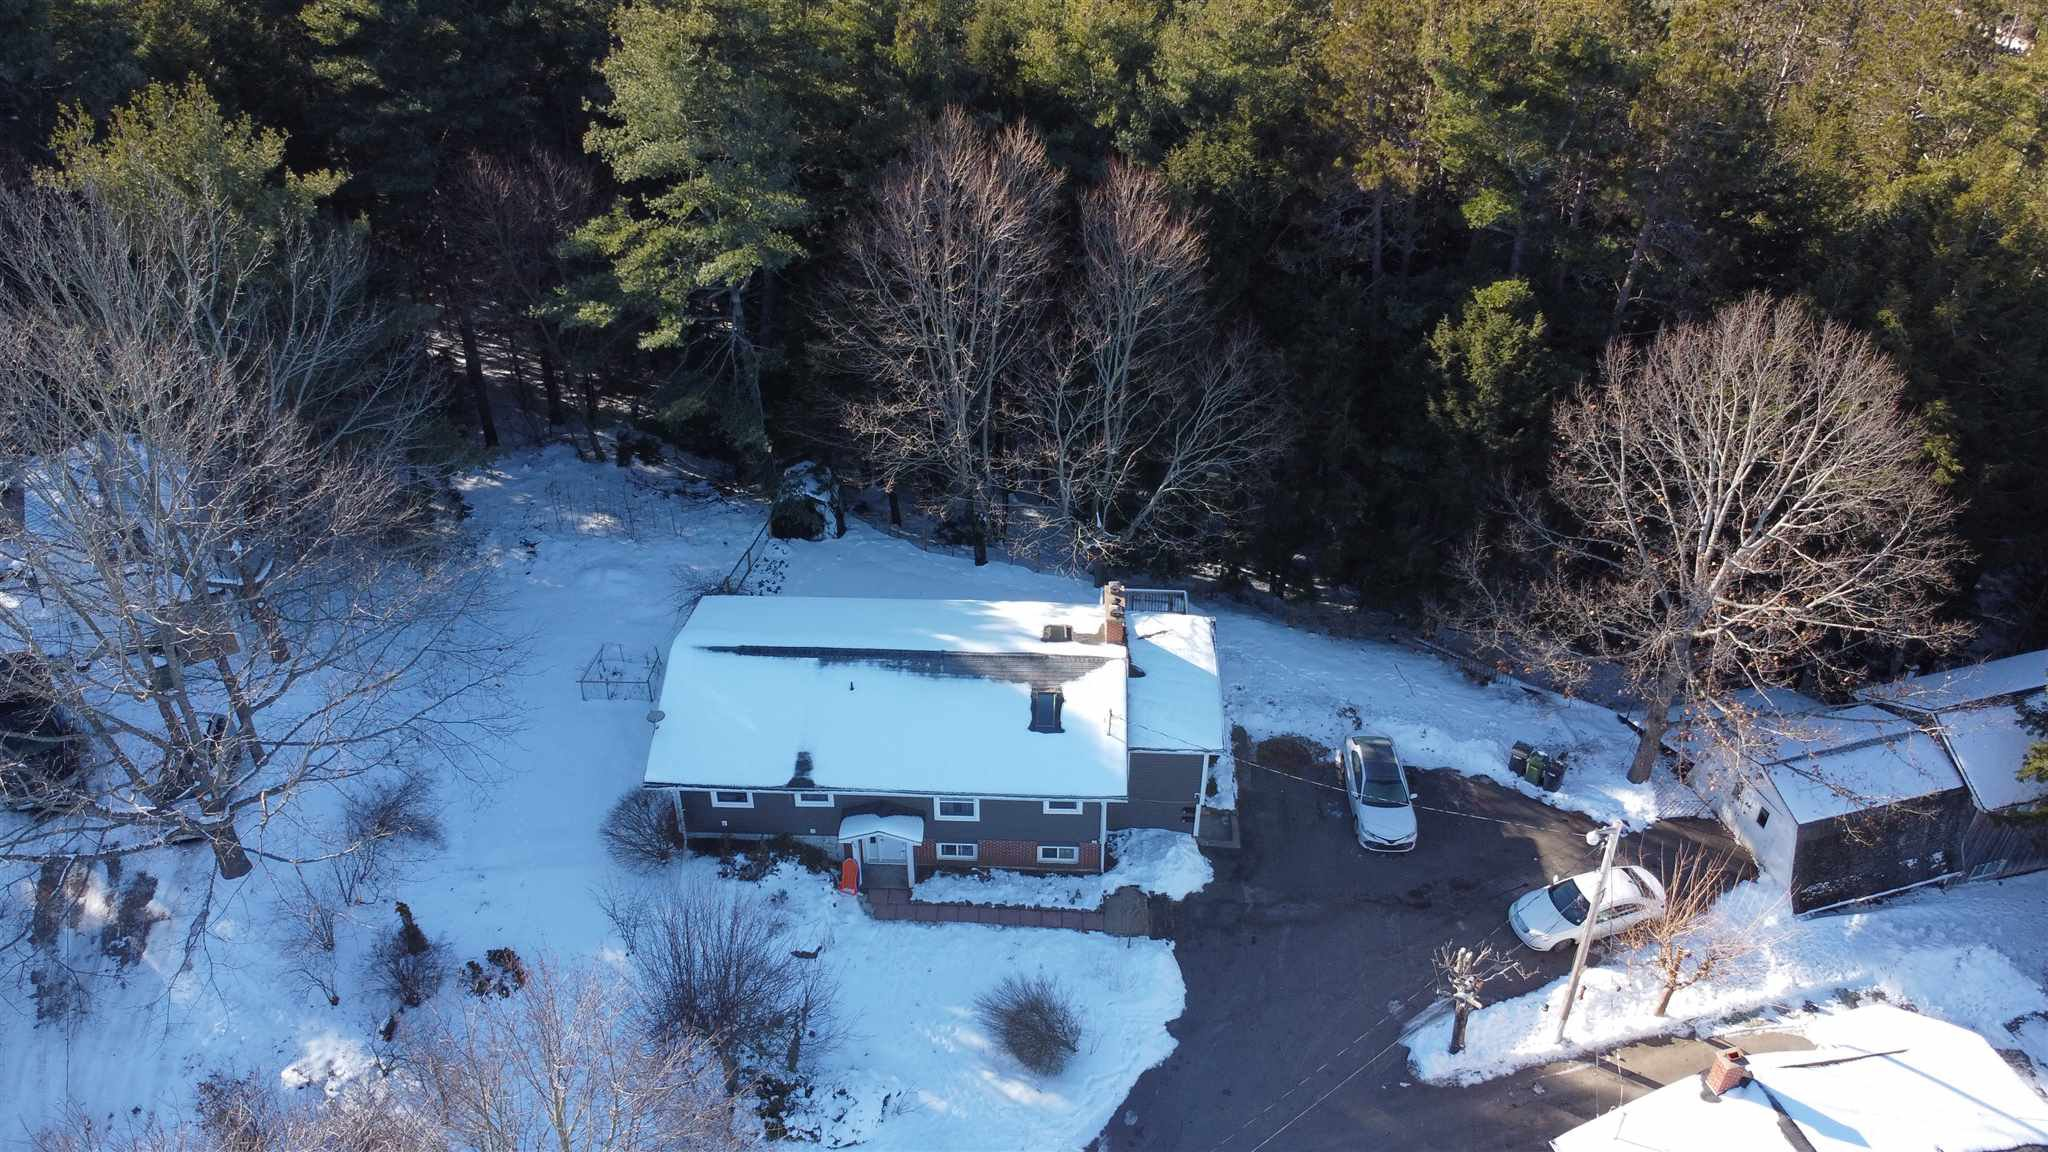 Main Photo: 106 Dow Road in New Minas: 404-Kings County Multi-Family for sale (Annapolis Valley)  : MLS®# 202100366